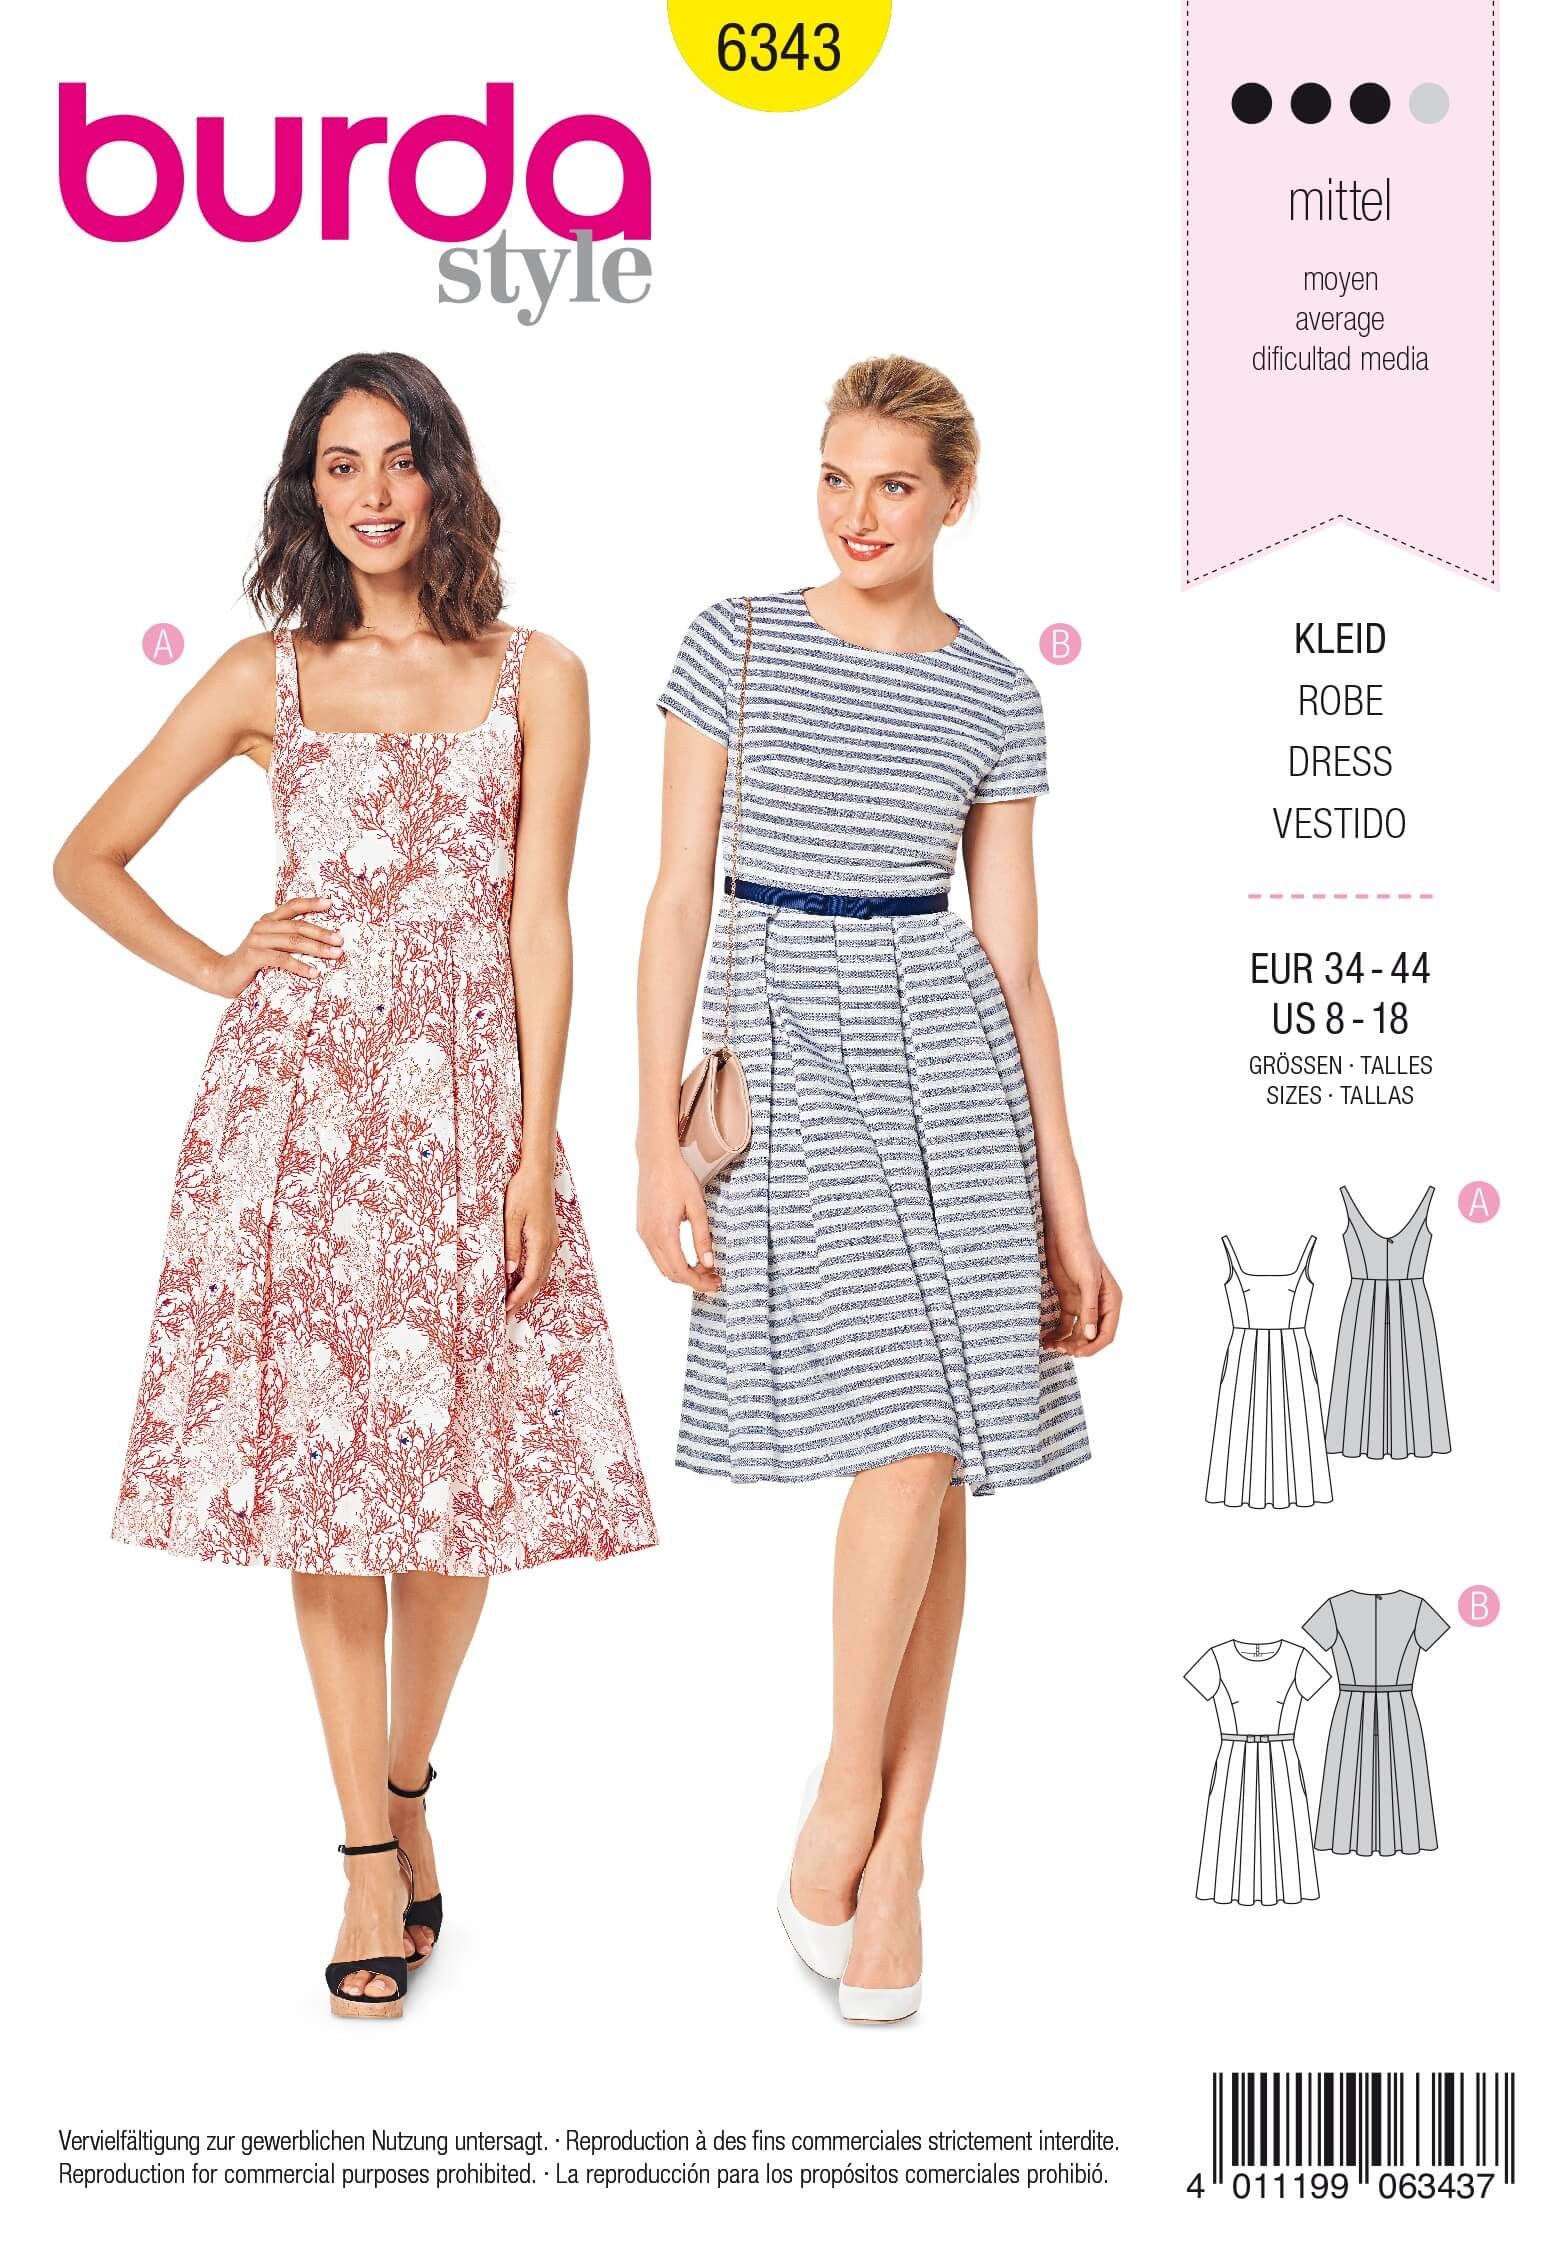 361f16fb2a Knitting Needles and Accessories Huge Selection. Shop Now. > Patterns>Sewing  Patterns>Burda Patterns>Dresses>Burda Style Misses' Pinafore Pleated Dress  ...